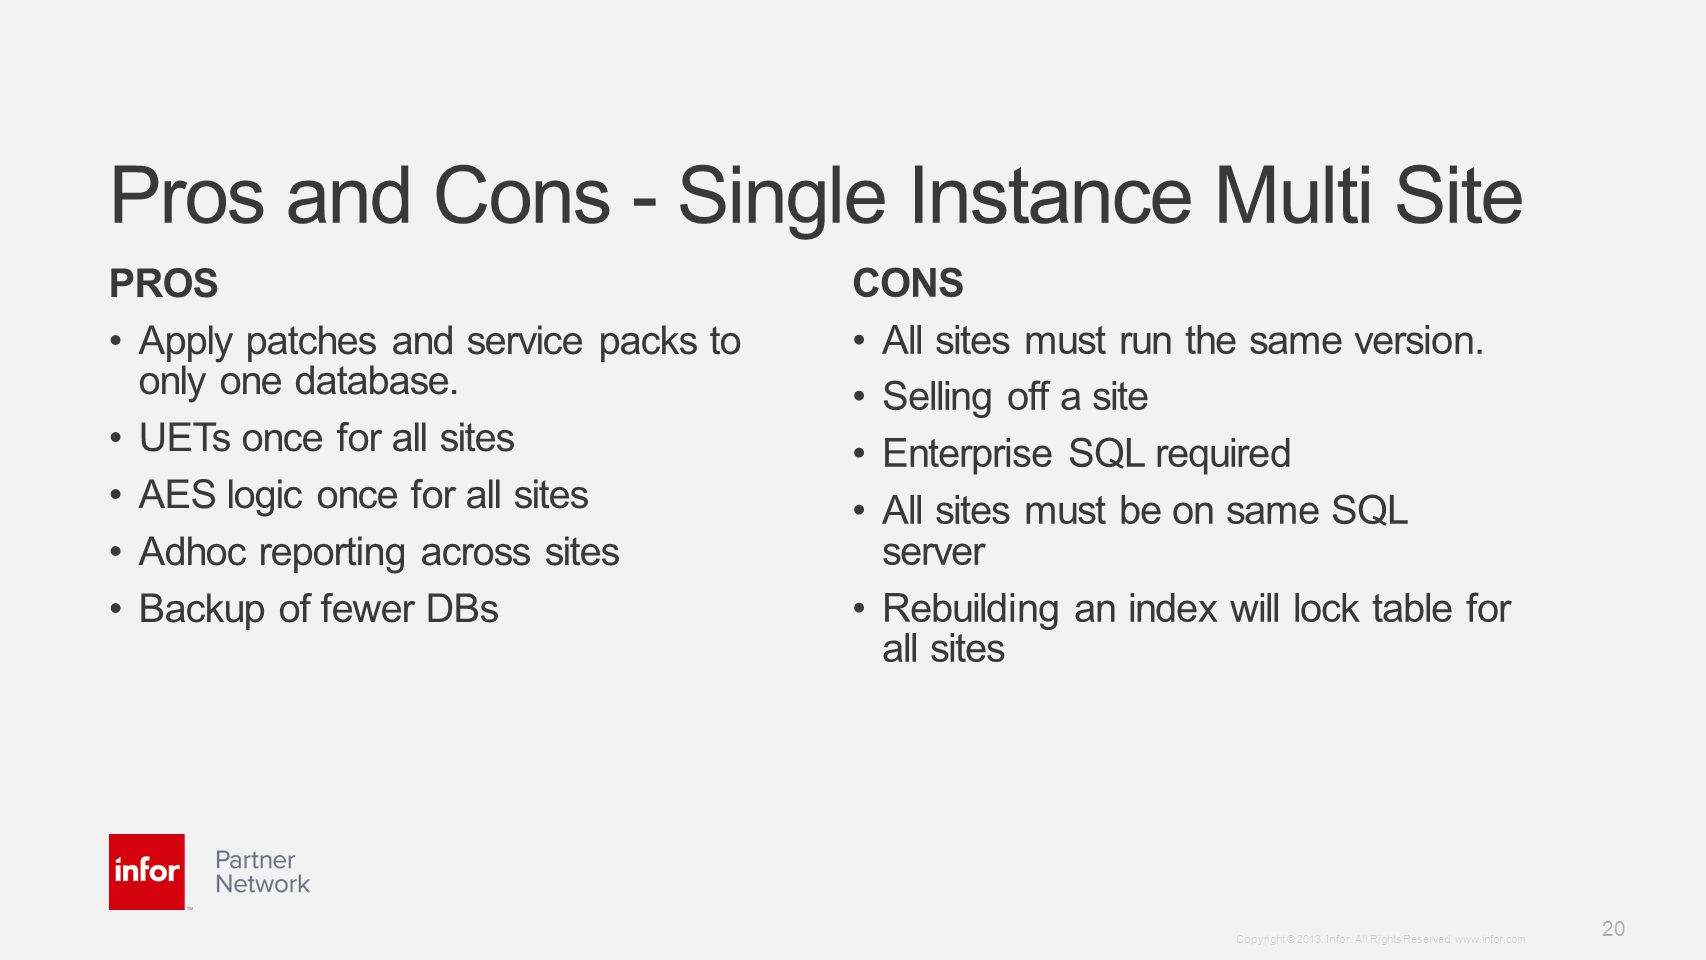 Pros and Cons - Single Instance Multi Site